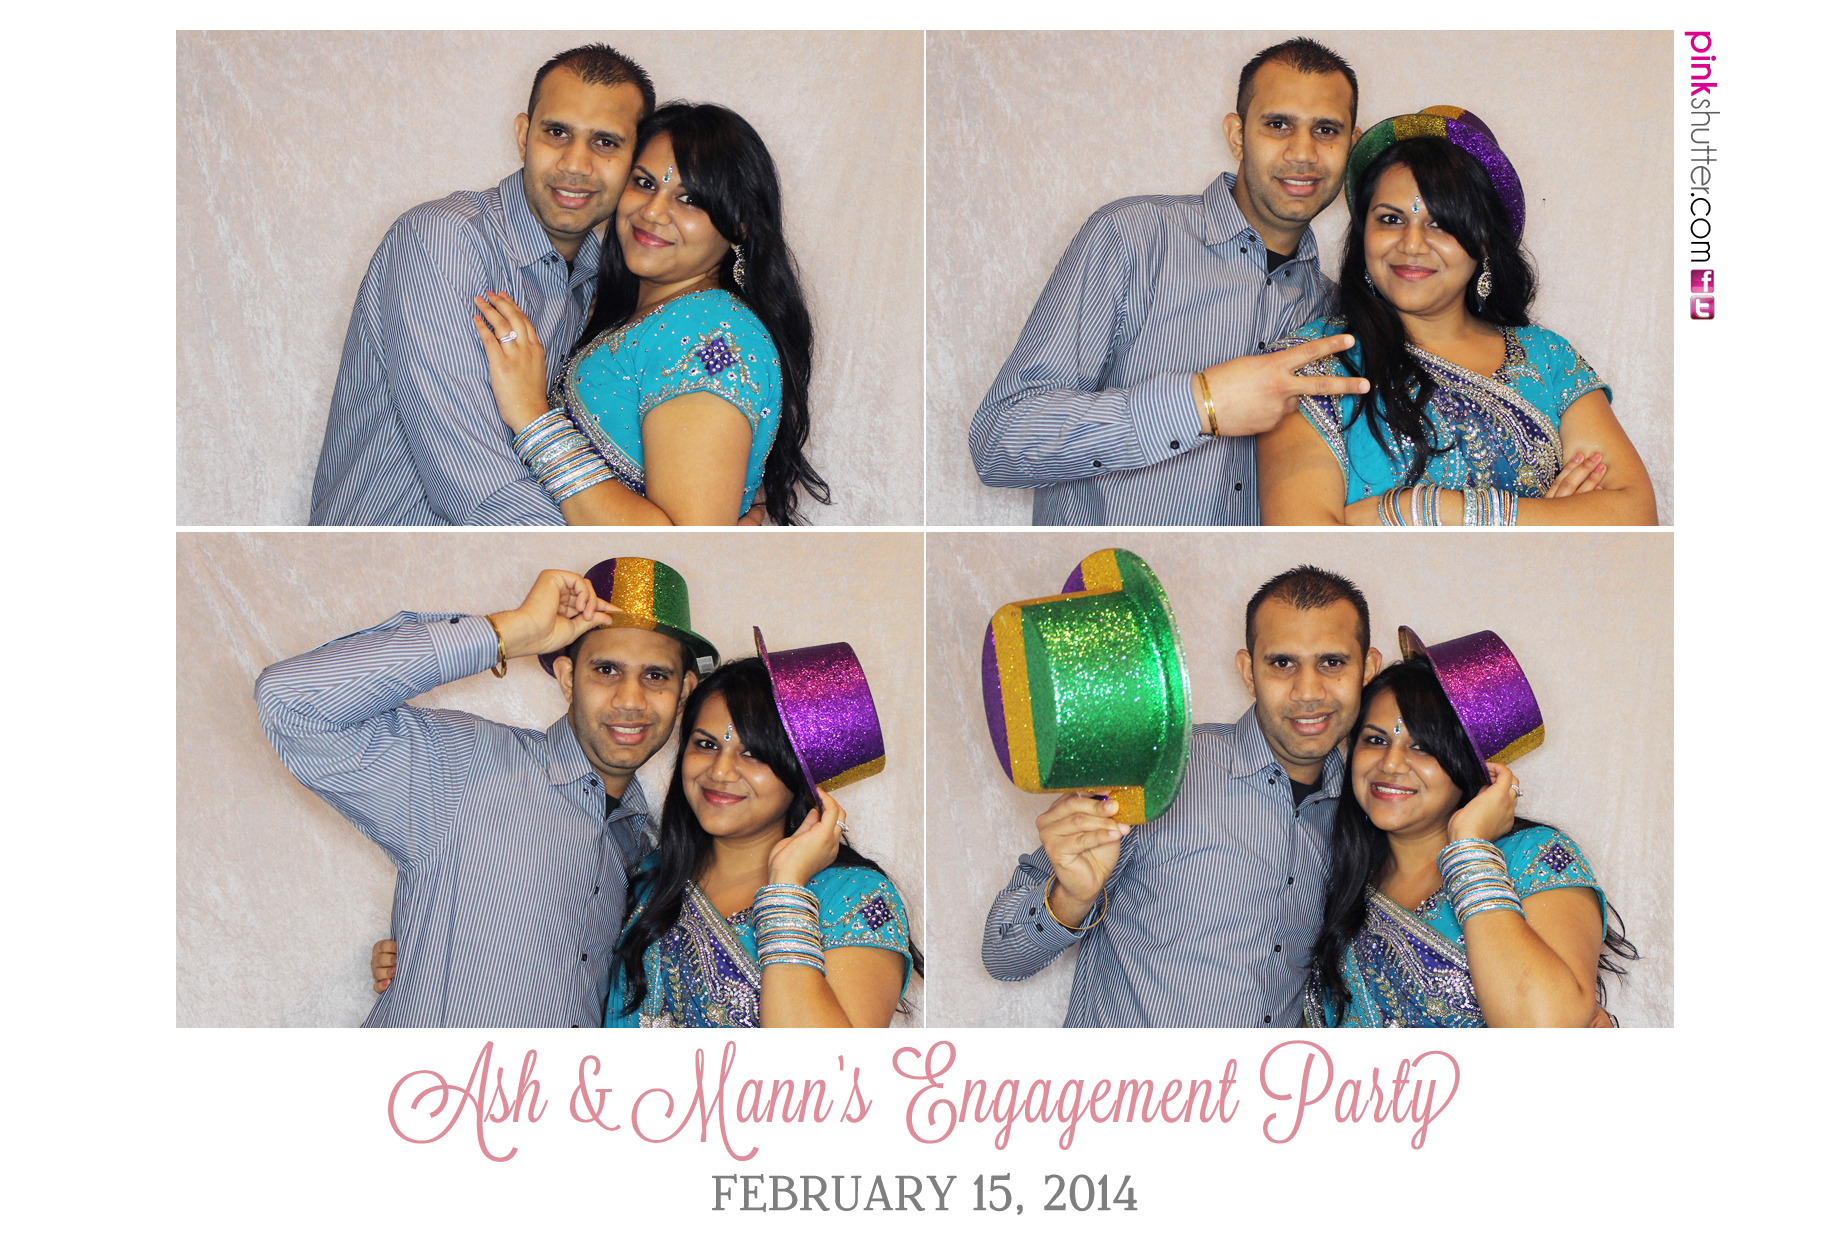 Example of Engagement Party Name Customization